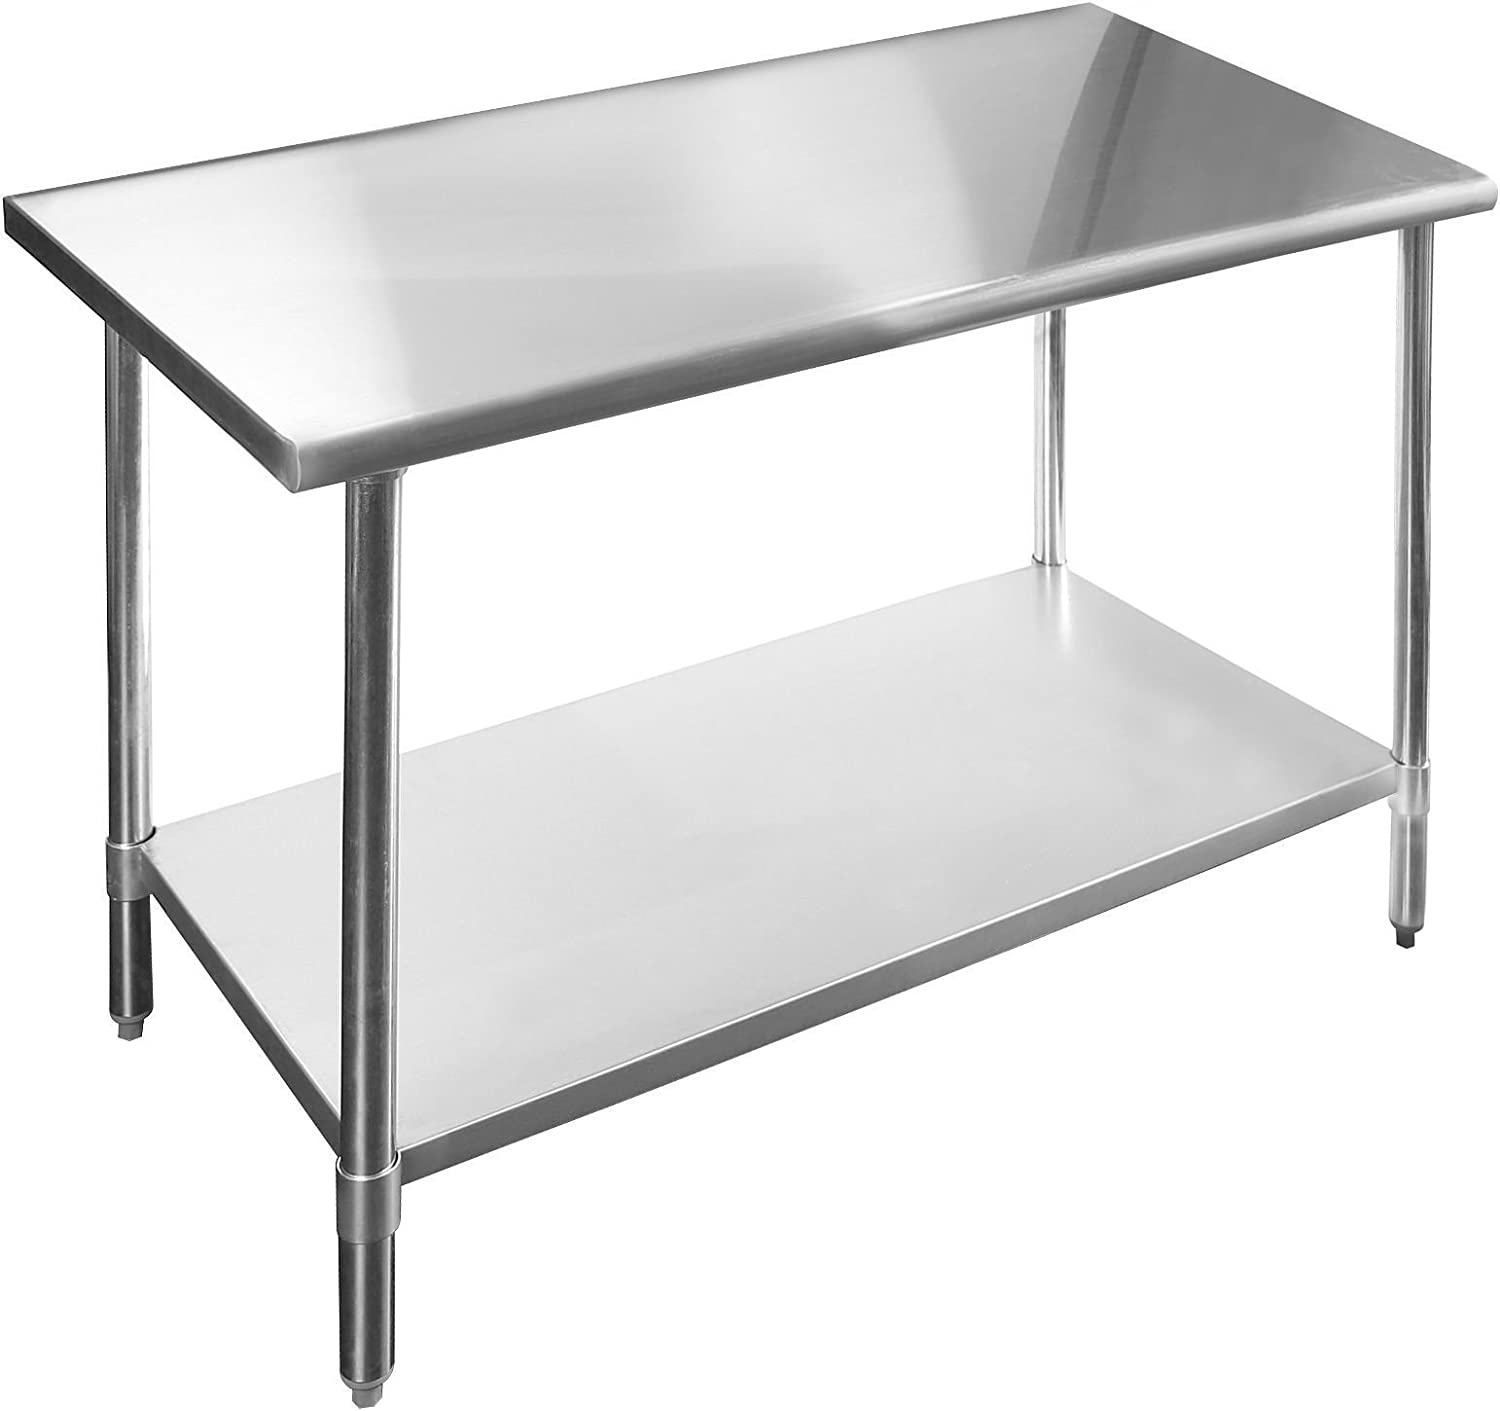 KPS Commercial Stainless Steel Work Prep 60 - Max 66% OFF Max 50% OFF 24 x Table NSF